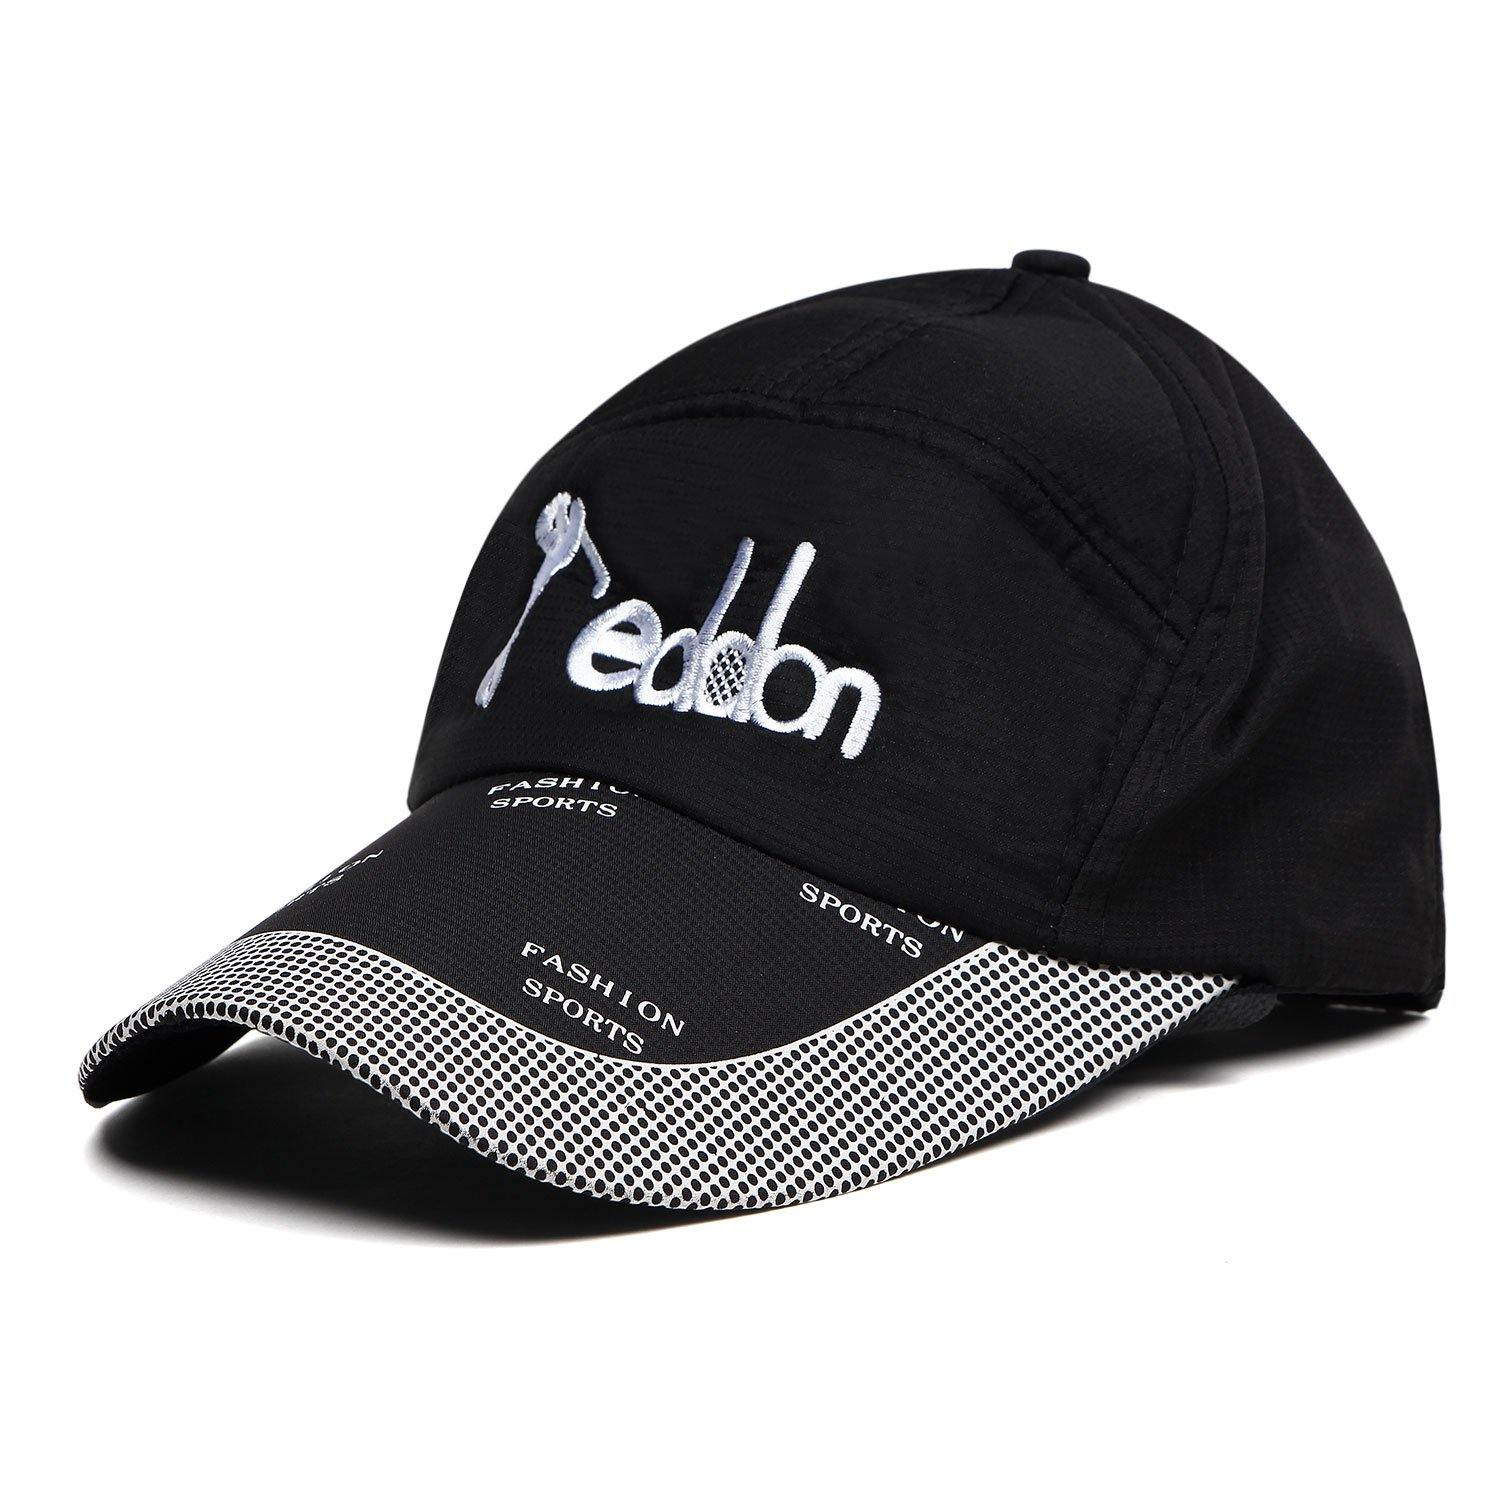 Fashionable Cotton Adjustable Summer Sports Cap with Stylish Brim For Men - Black